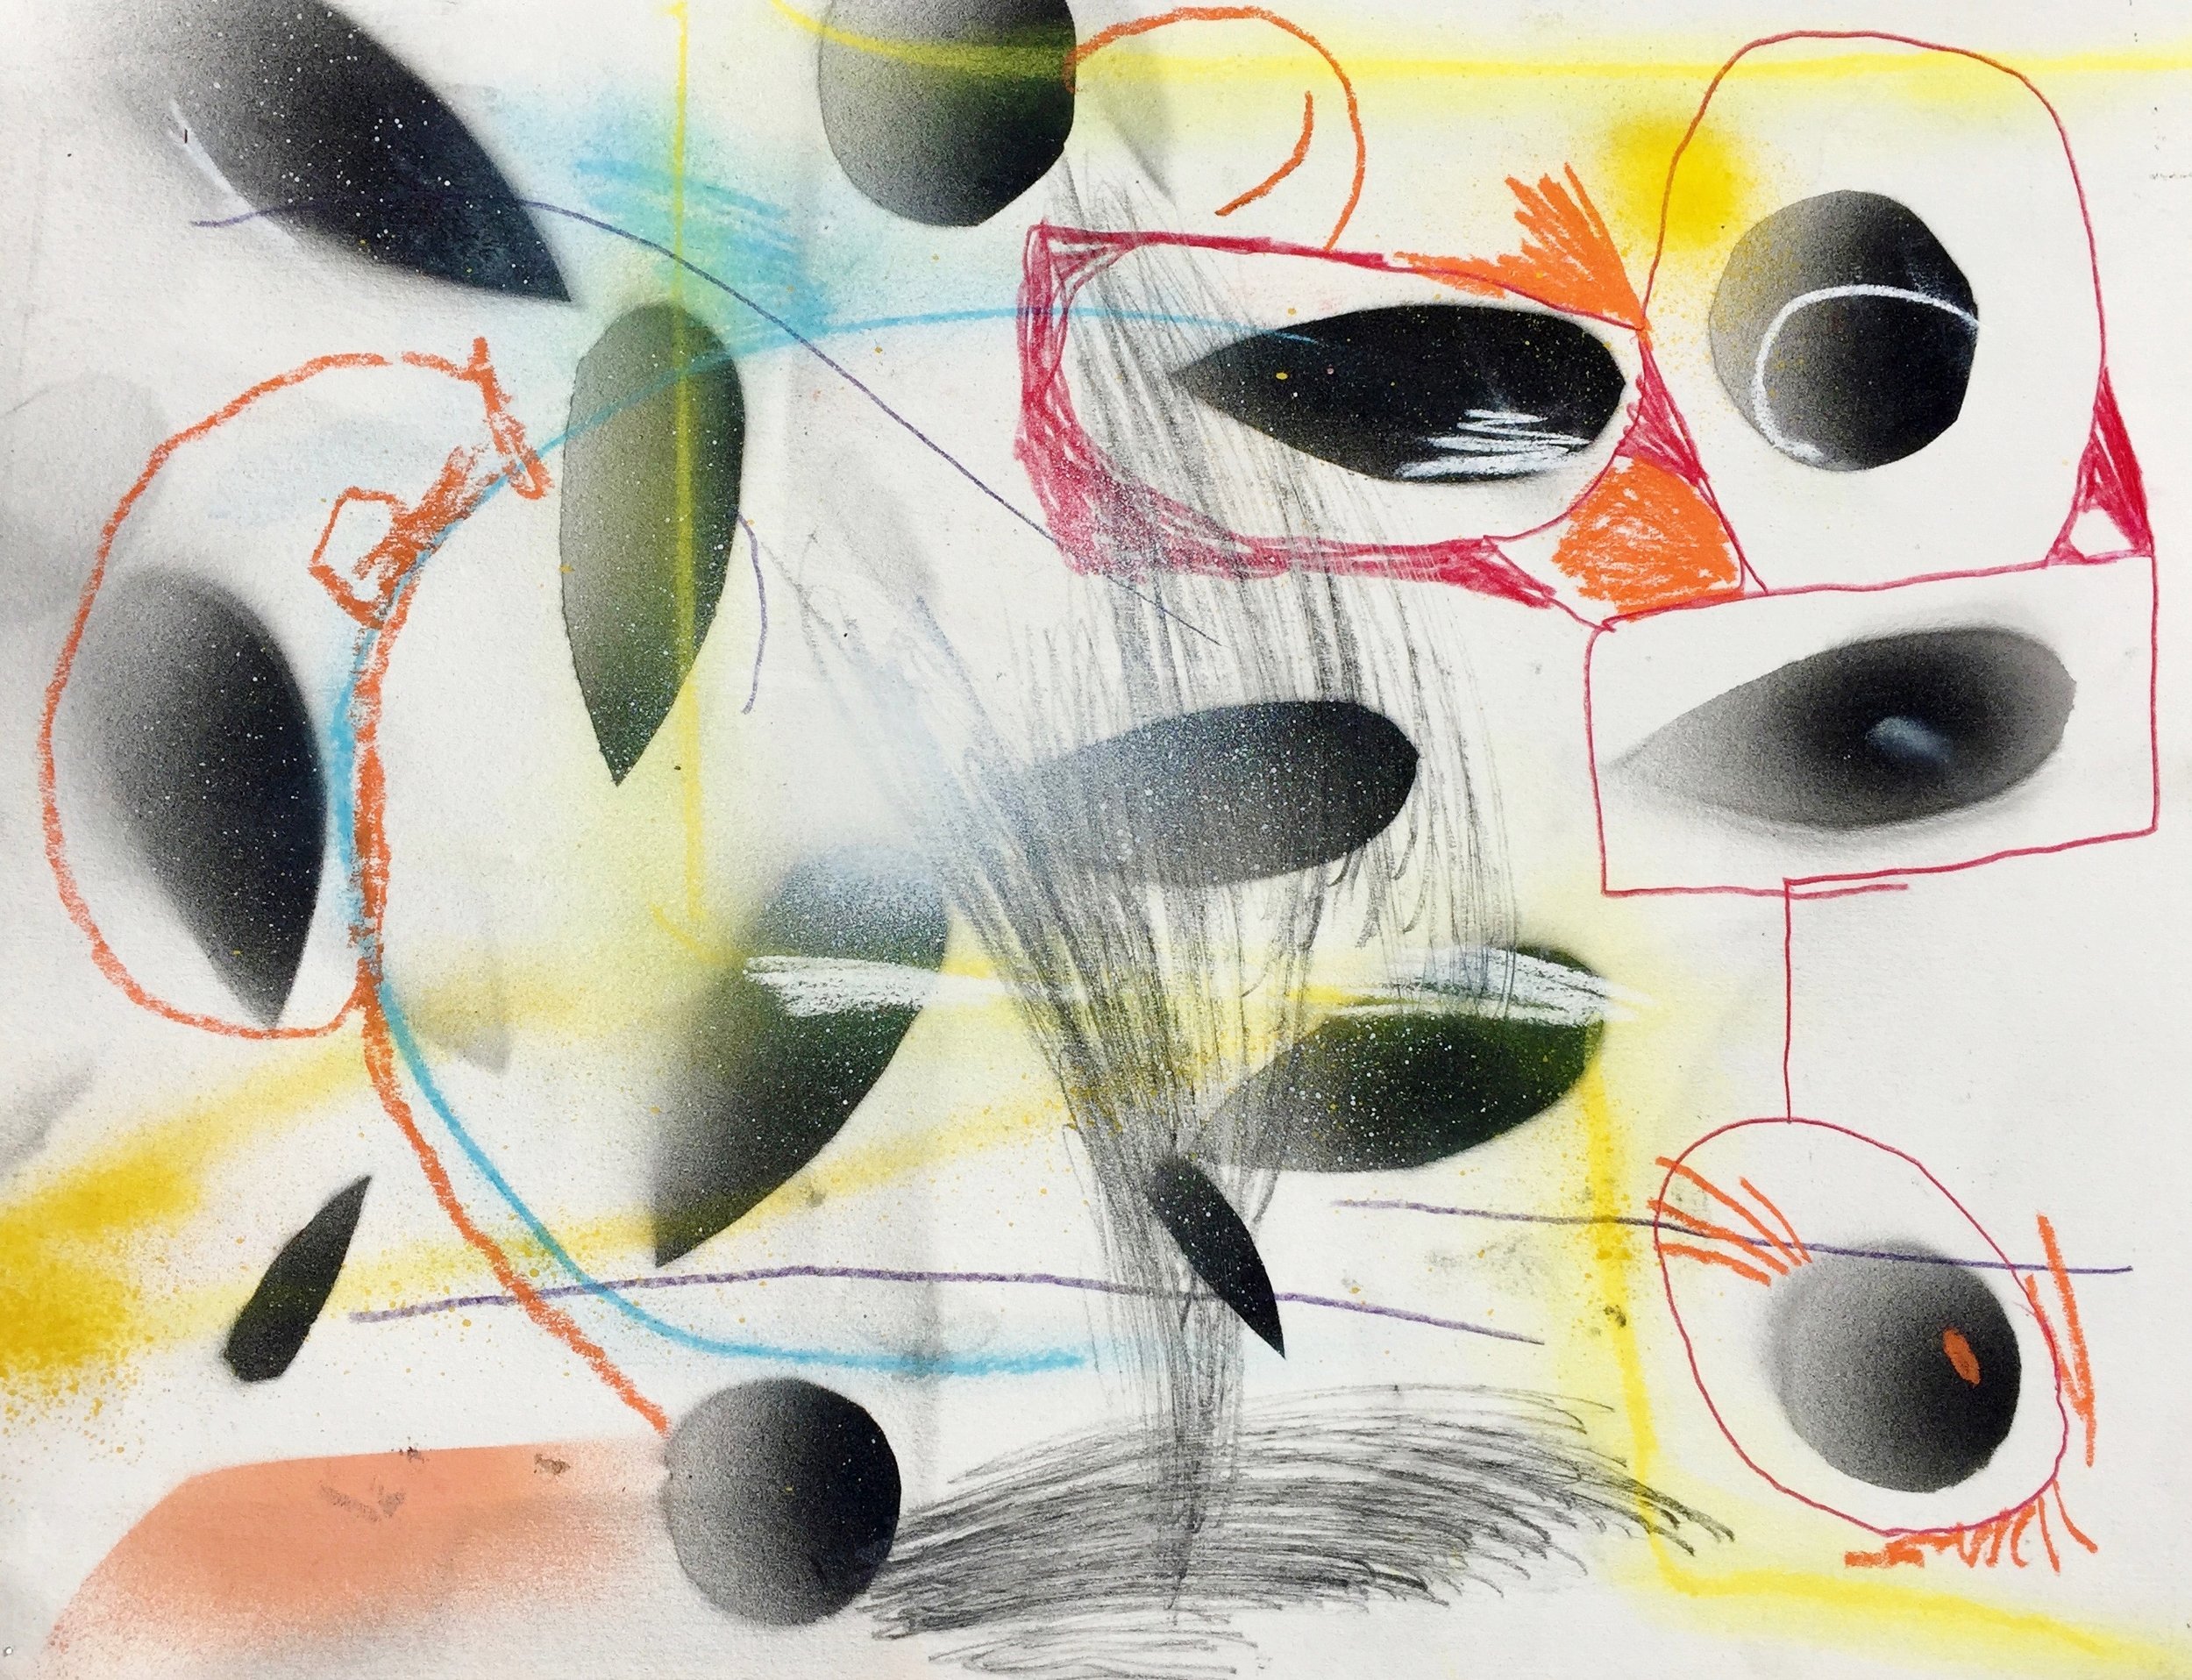 Drawing Room (141)    Mixed media on paper  2013  14 x 11 In  $2,500.00